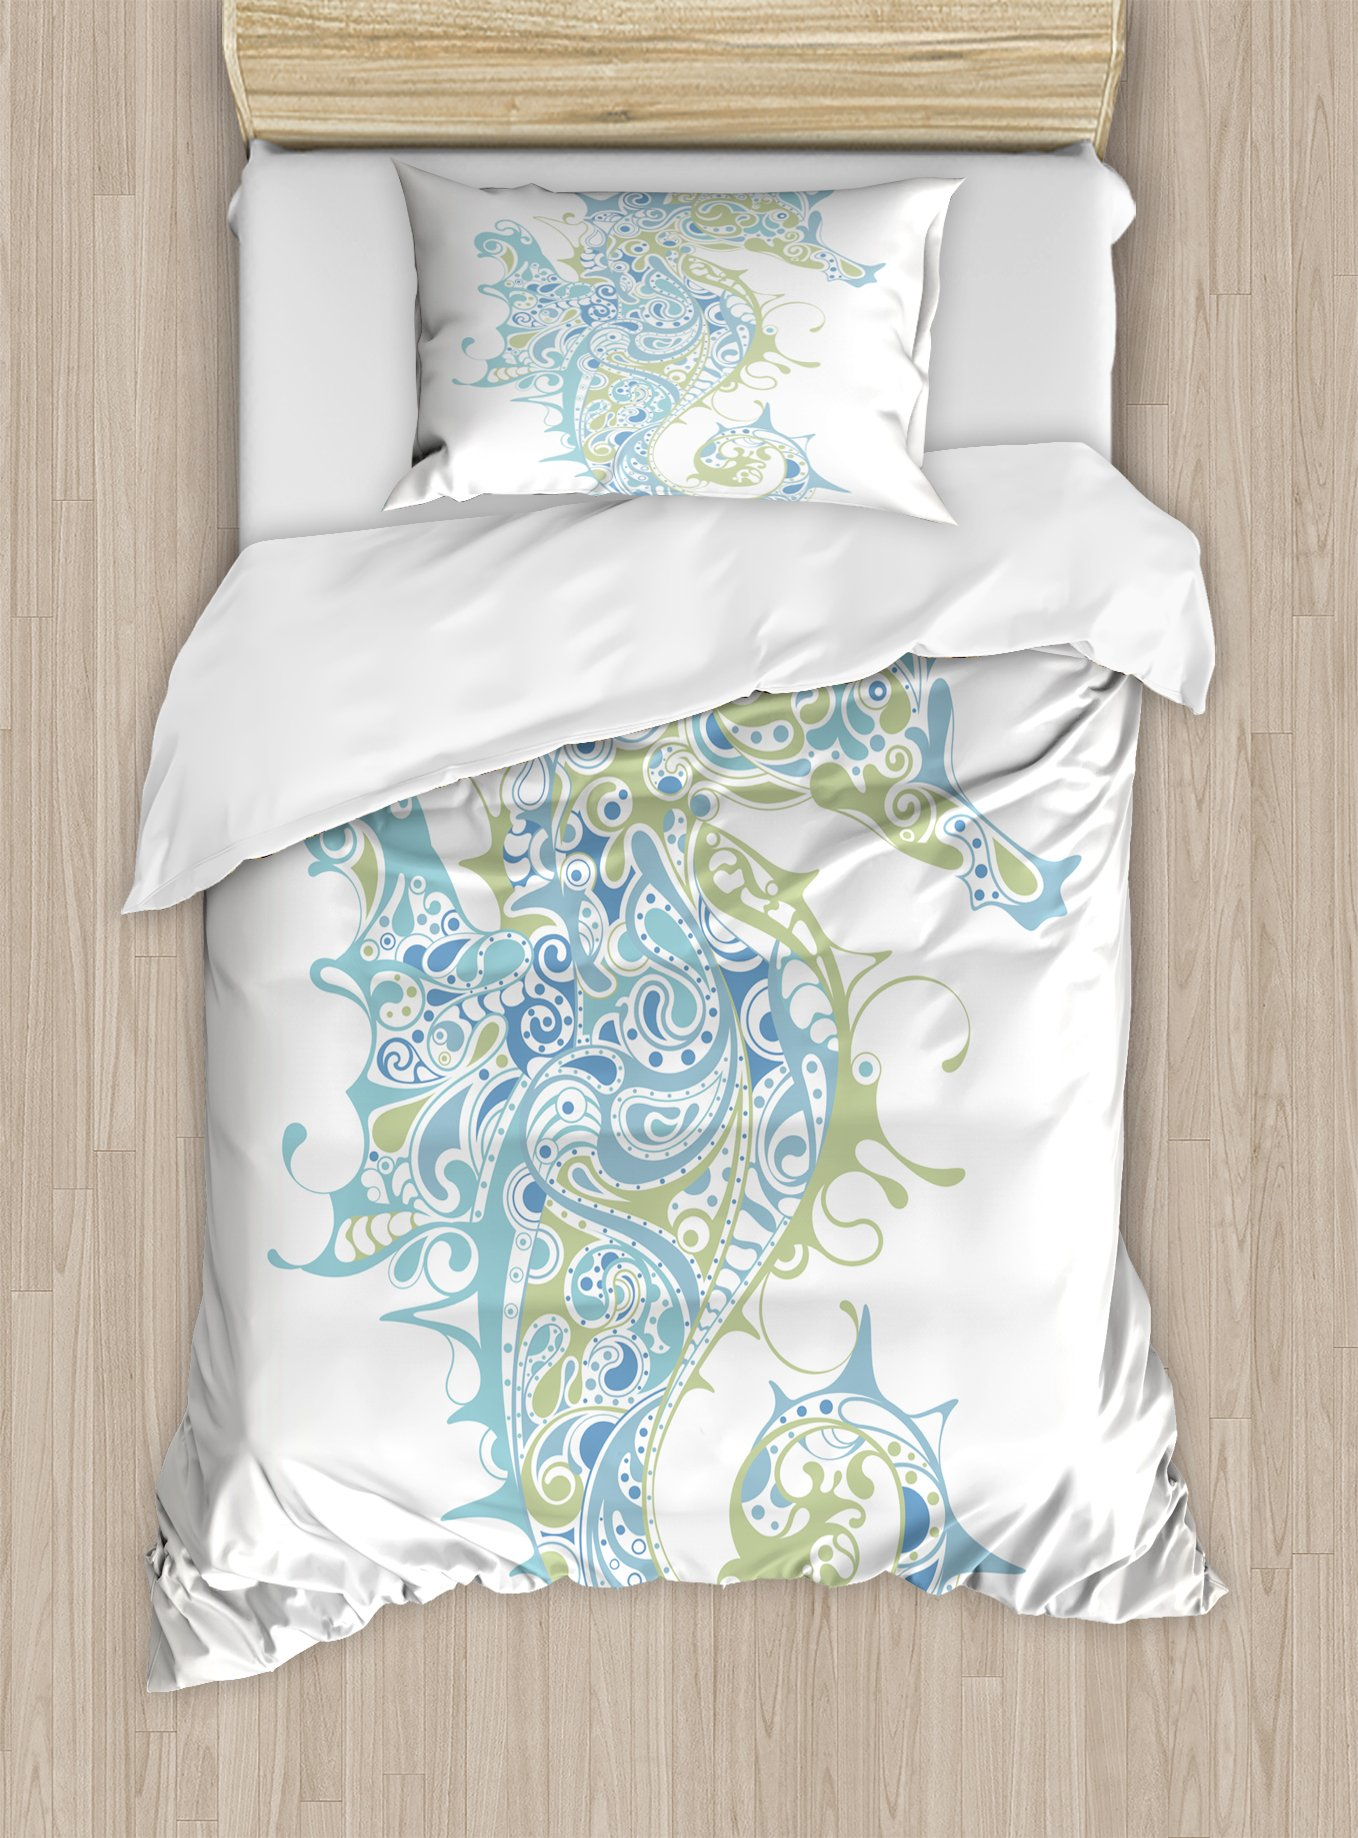 Ambesonne Animal Duvet Cover Set Twin Size, Greek Culture Art Textured Ancient Seahorse Idol Spiritual Life Cycle Artwork, Decorative 2 Piece Bedding Set with 1 Pillow Sham, Pale Blue Green